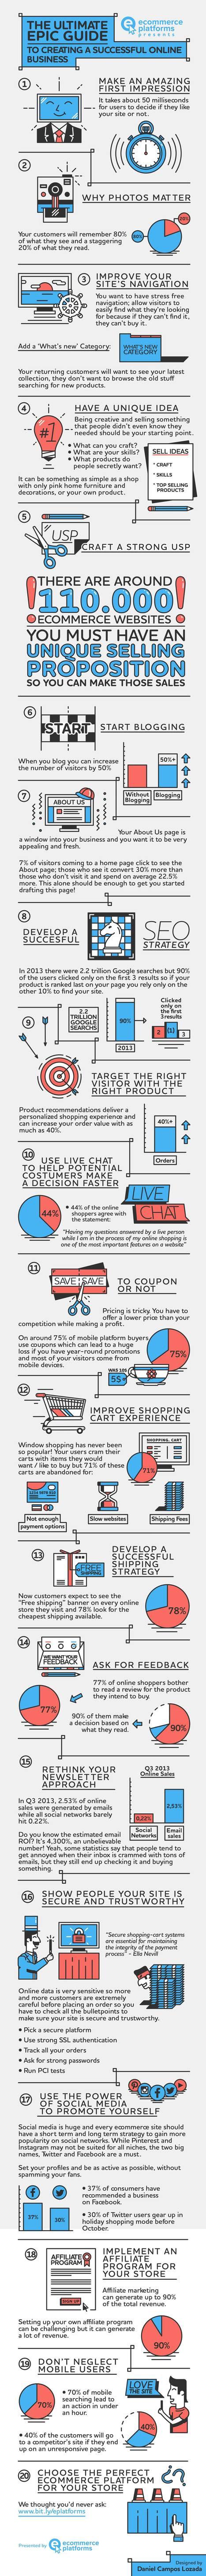 #Infographic The ultimate guide to creating a successful online business | Internet Presence | Scoop.it